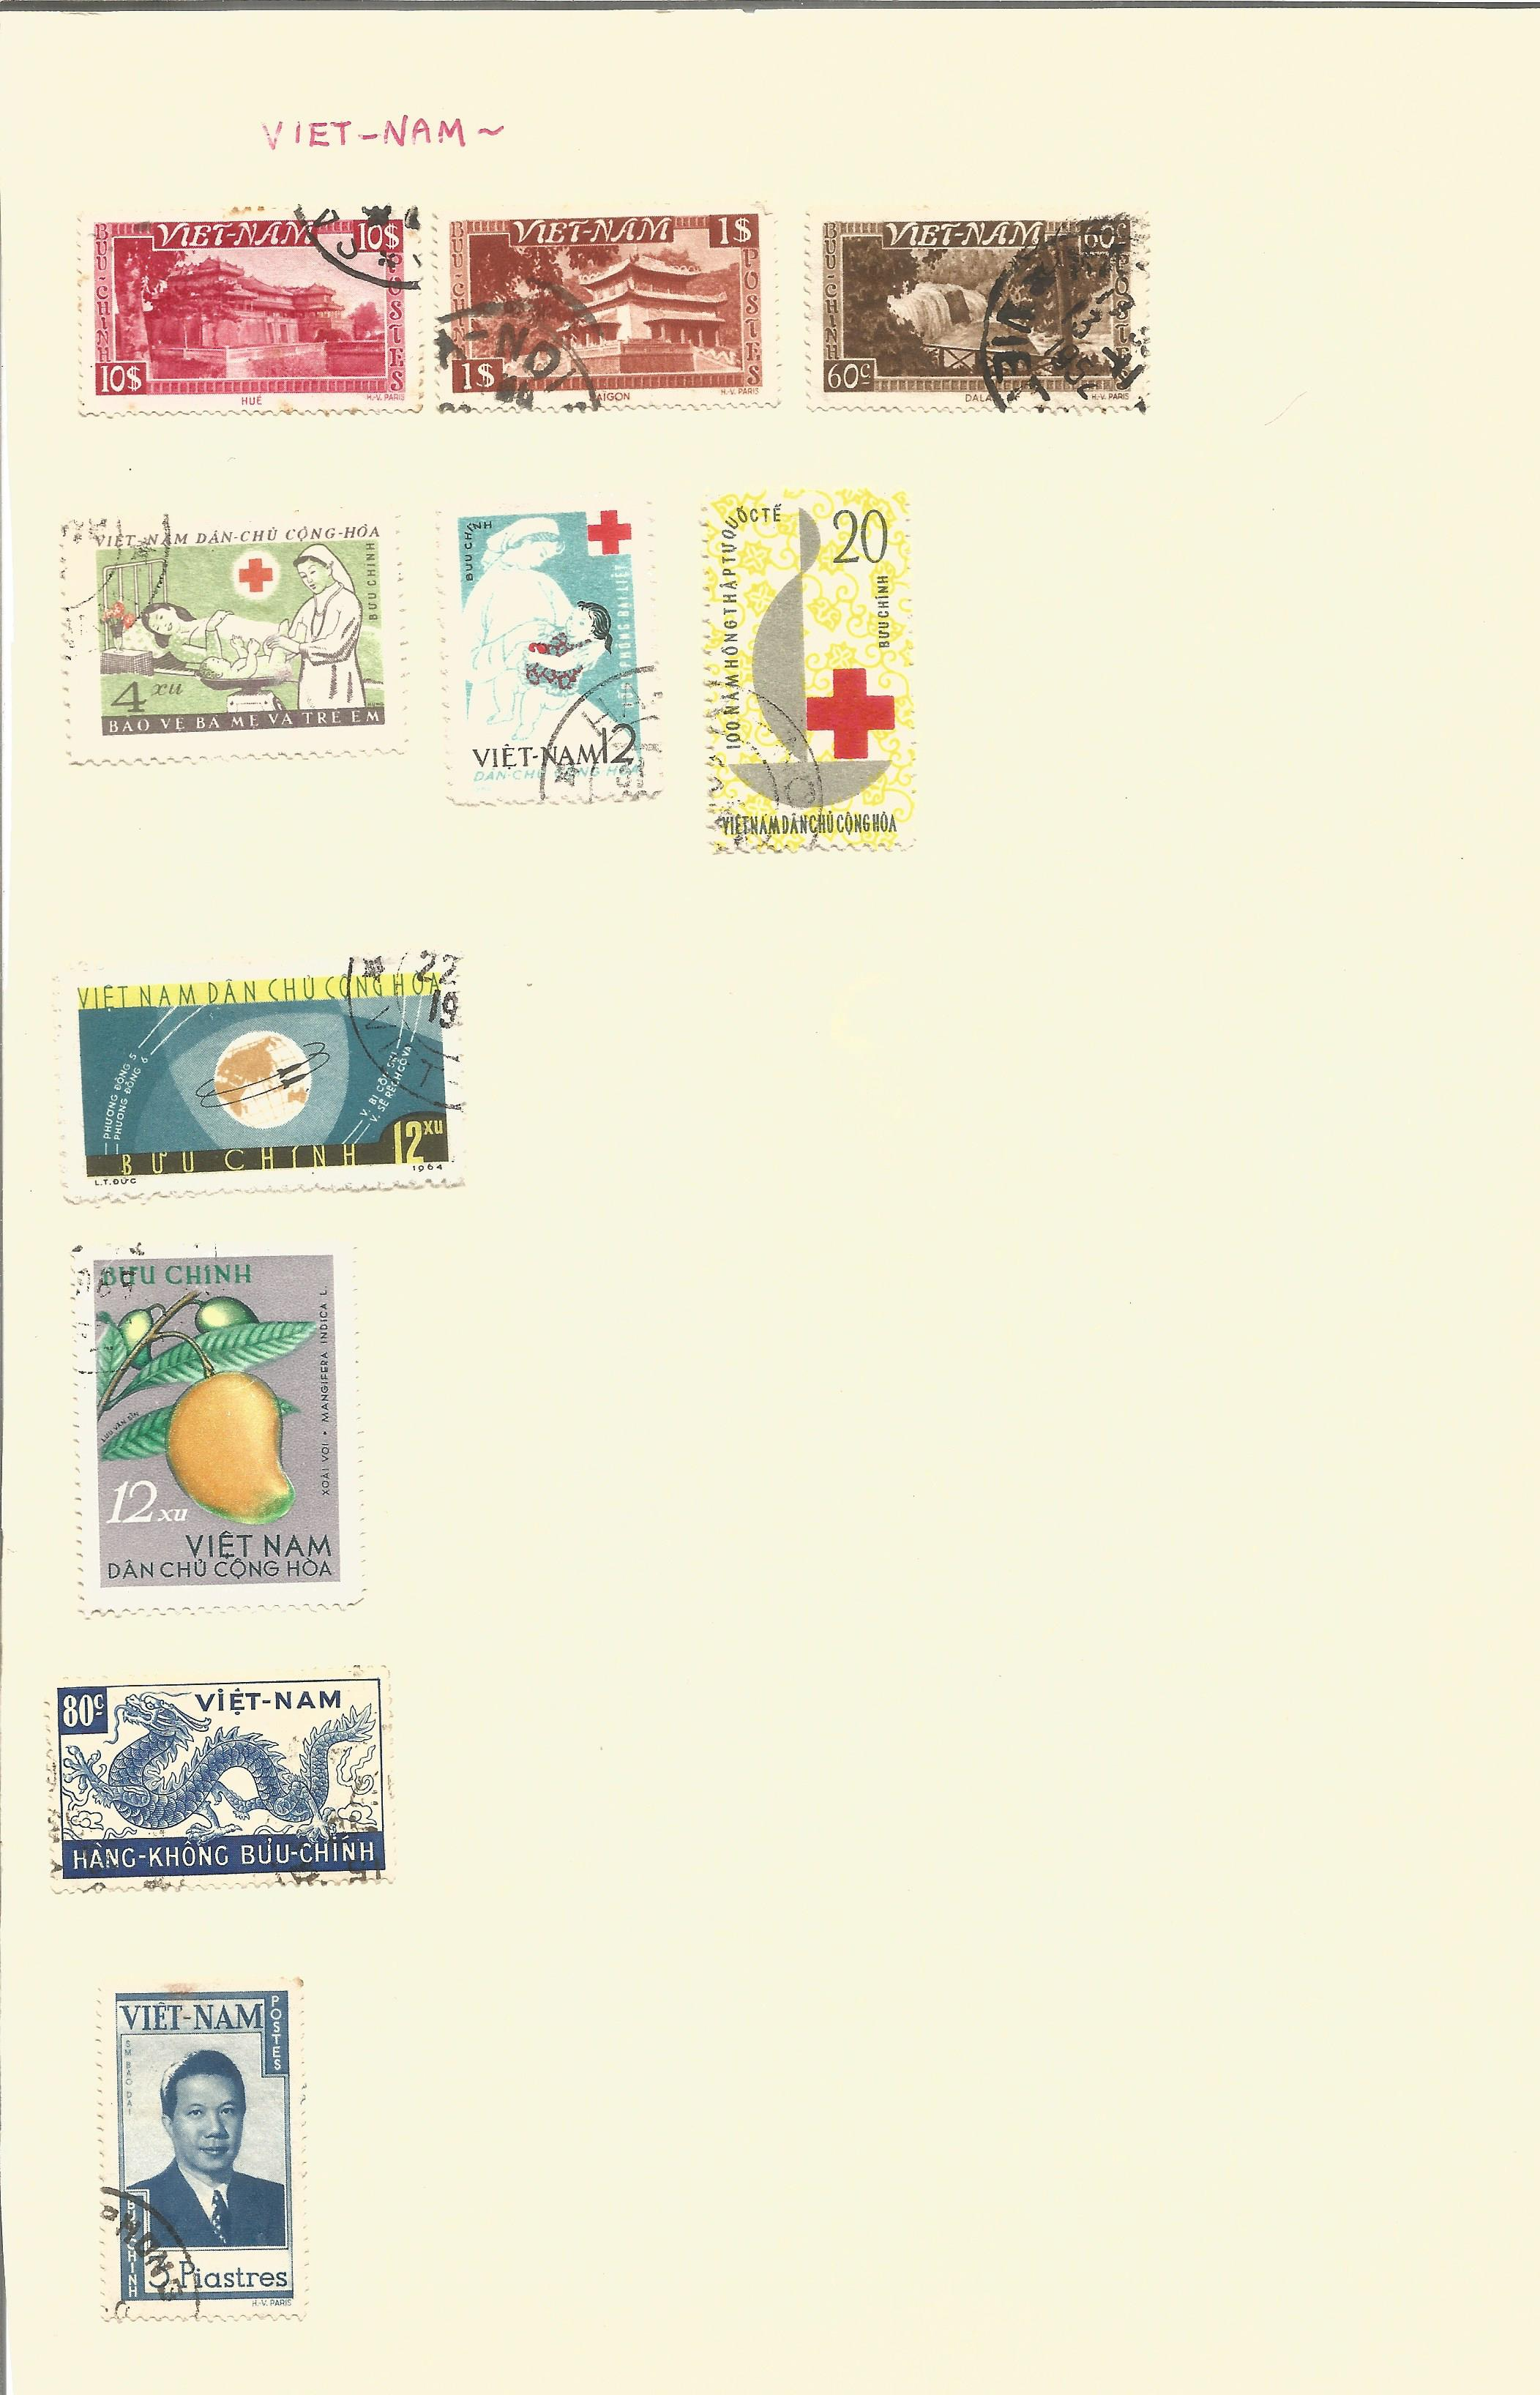 World stamp collection on 14 pages. Good condition. We combine postage on multiple winning lots - Image 3 of 4